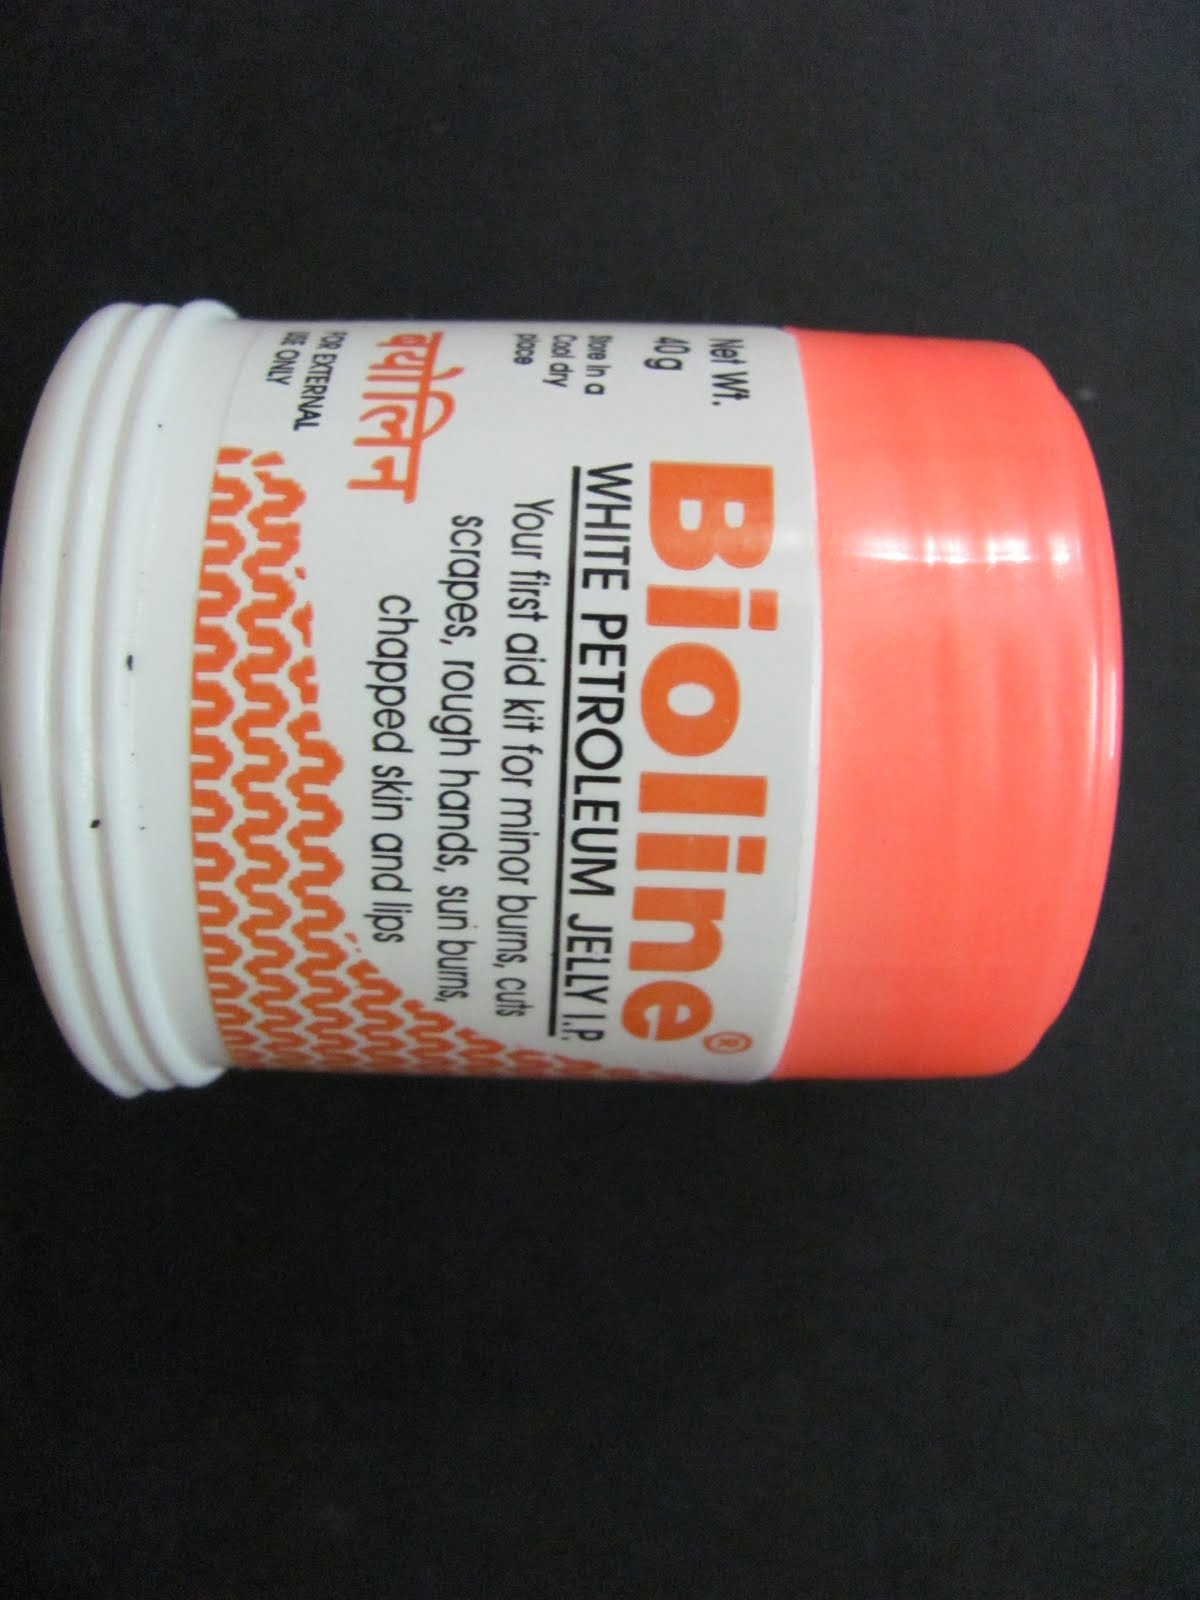 "Review Of Men S Health: Review Of Beauty Products: Review Of ""BIOLINE"" Lipbalm"